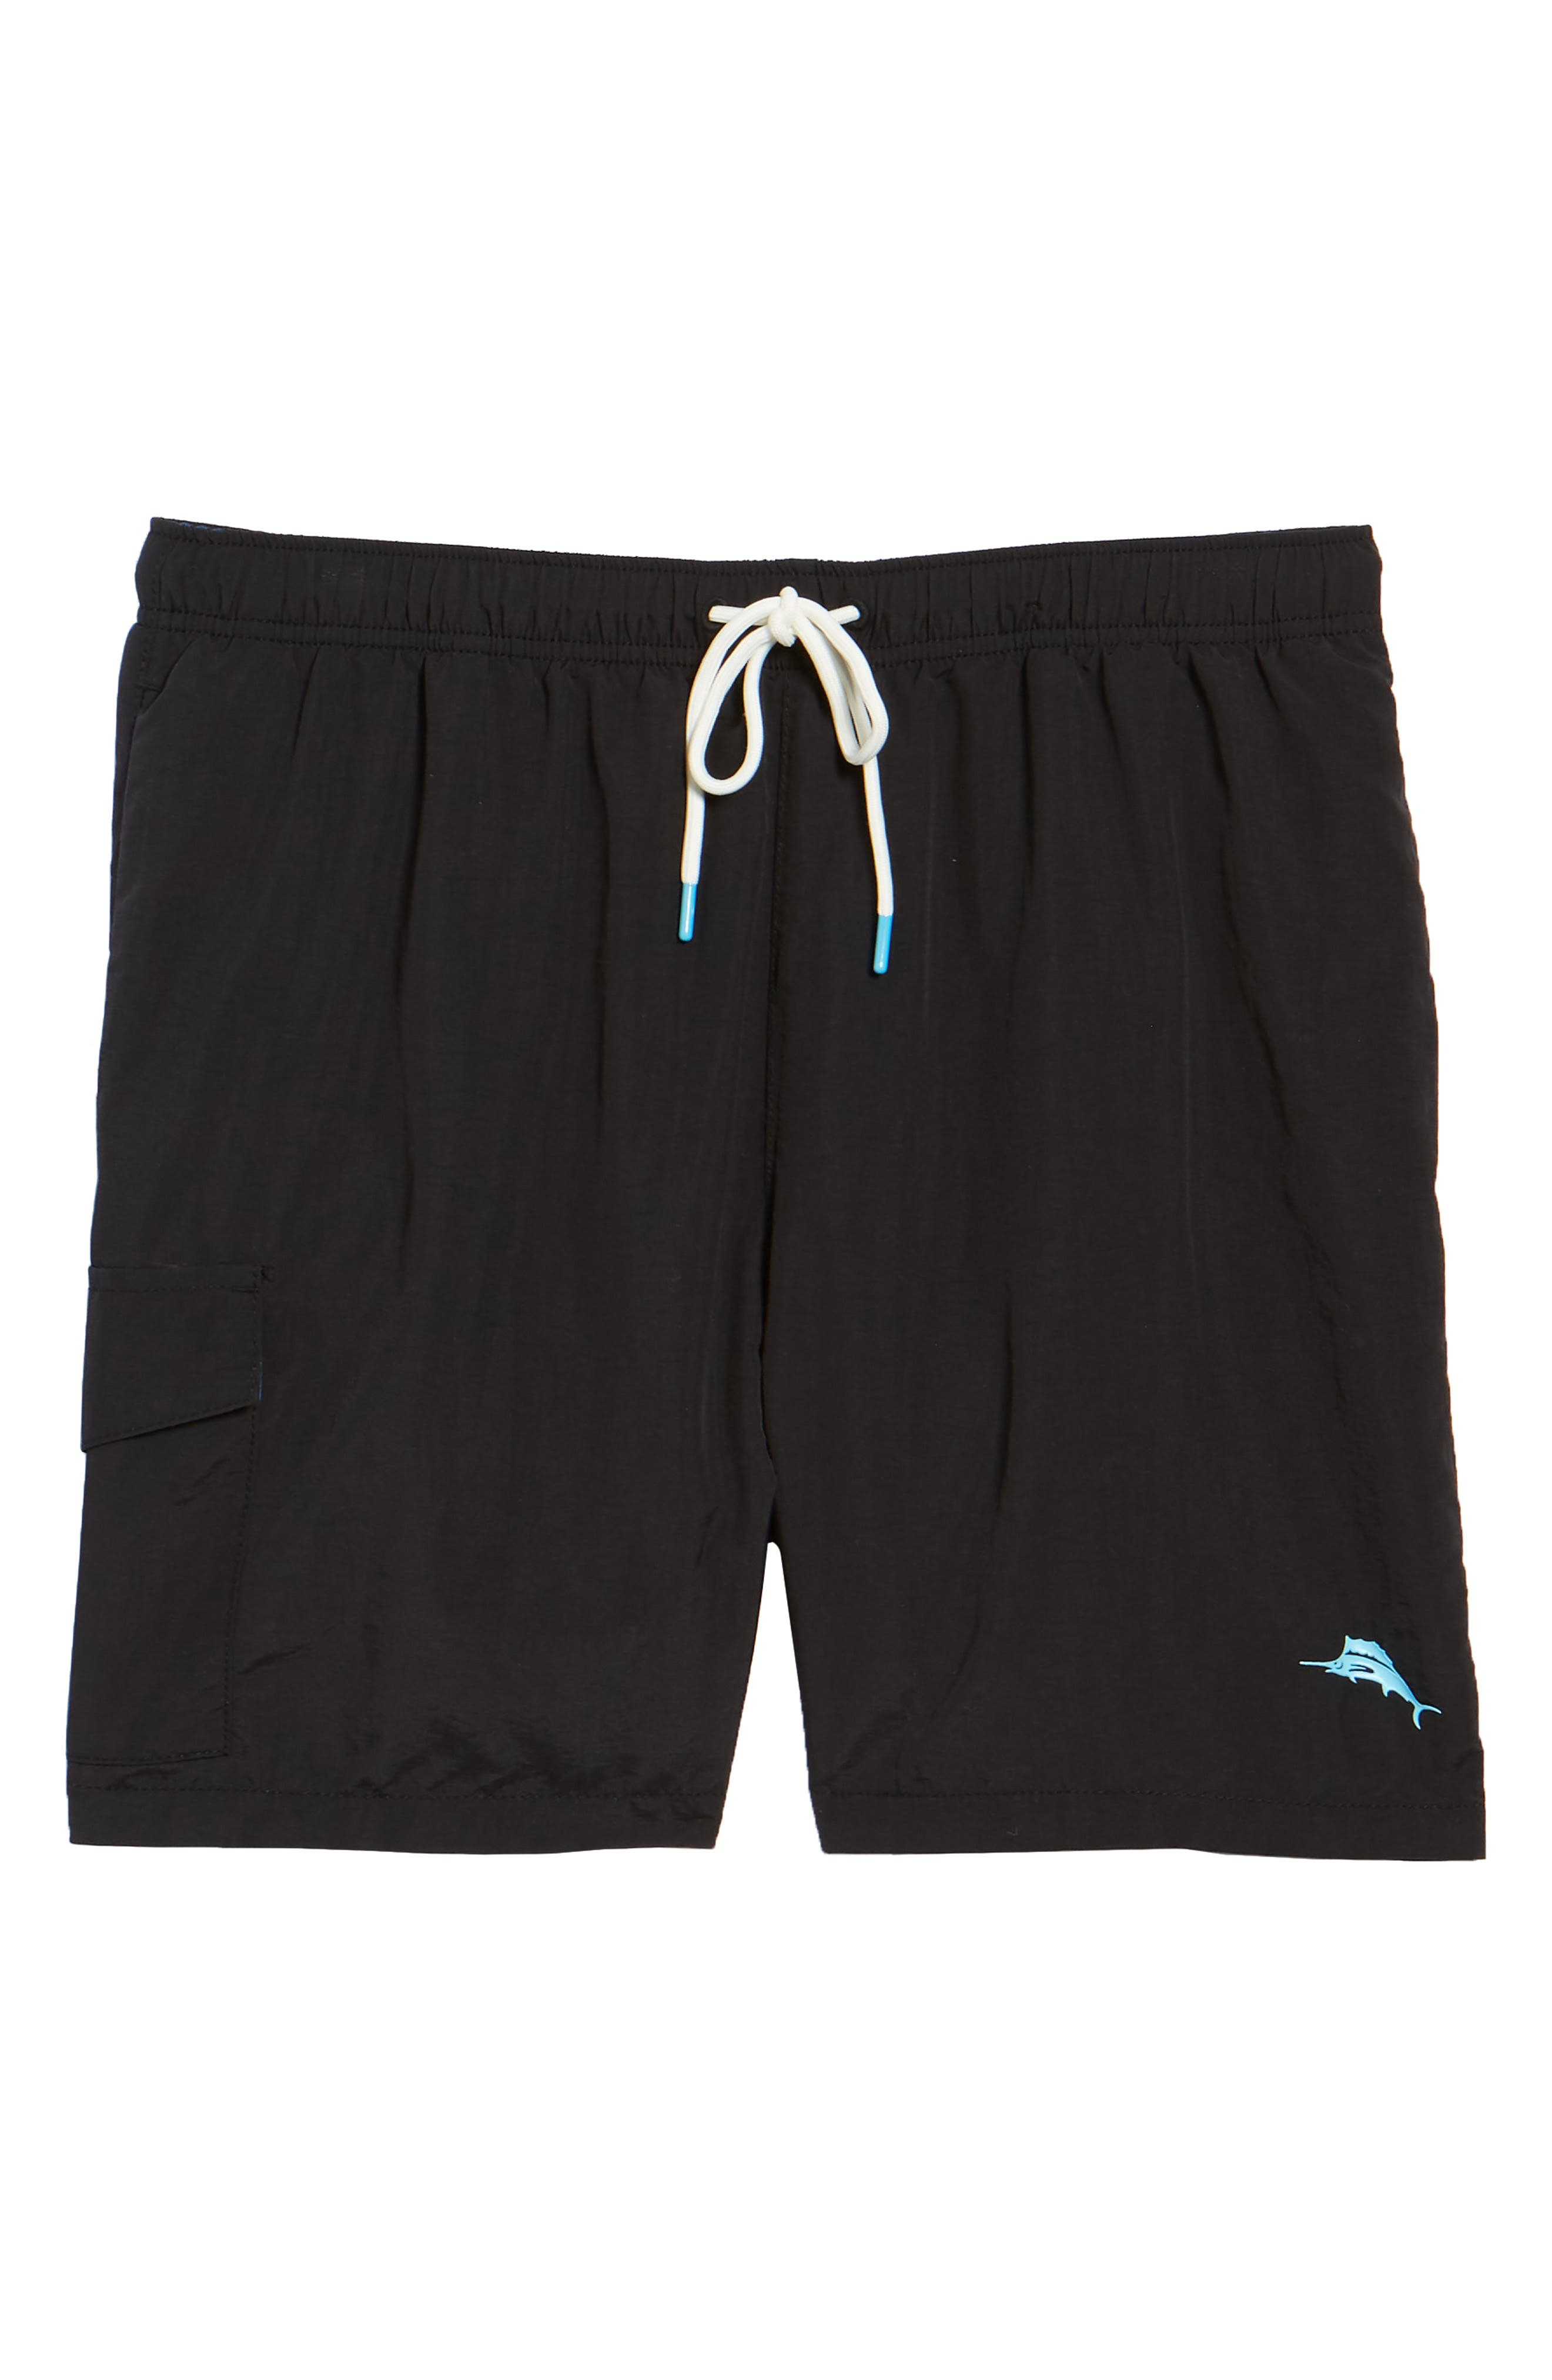 Naples Coast Swim Trunks,                             Alternate thumbnail 6, color,                             BLACK